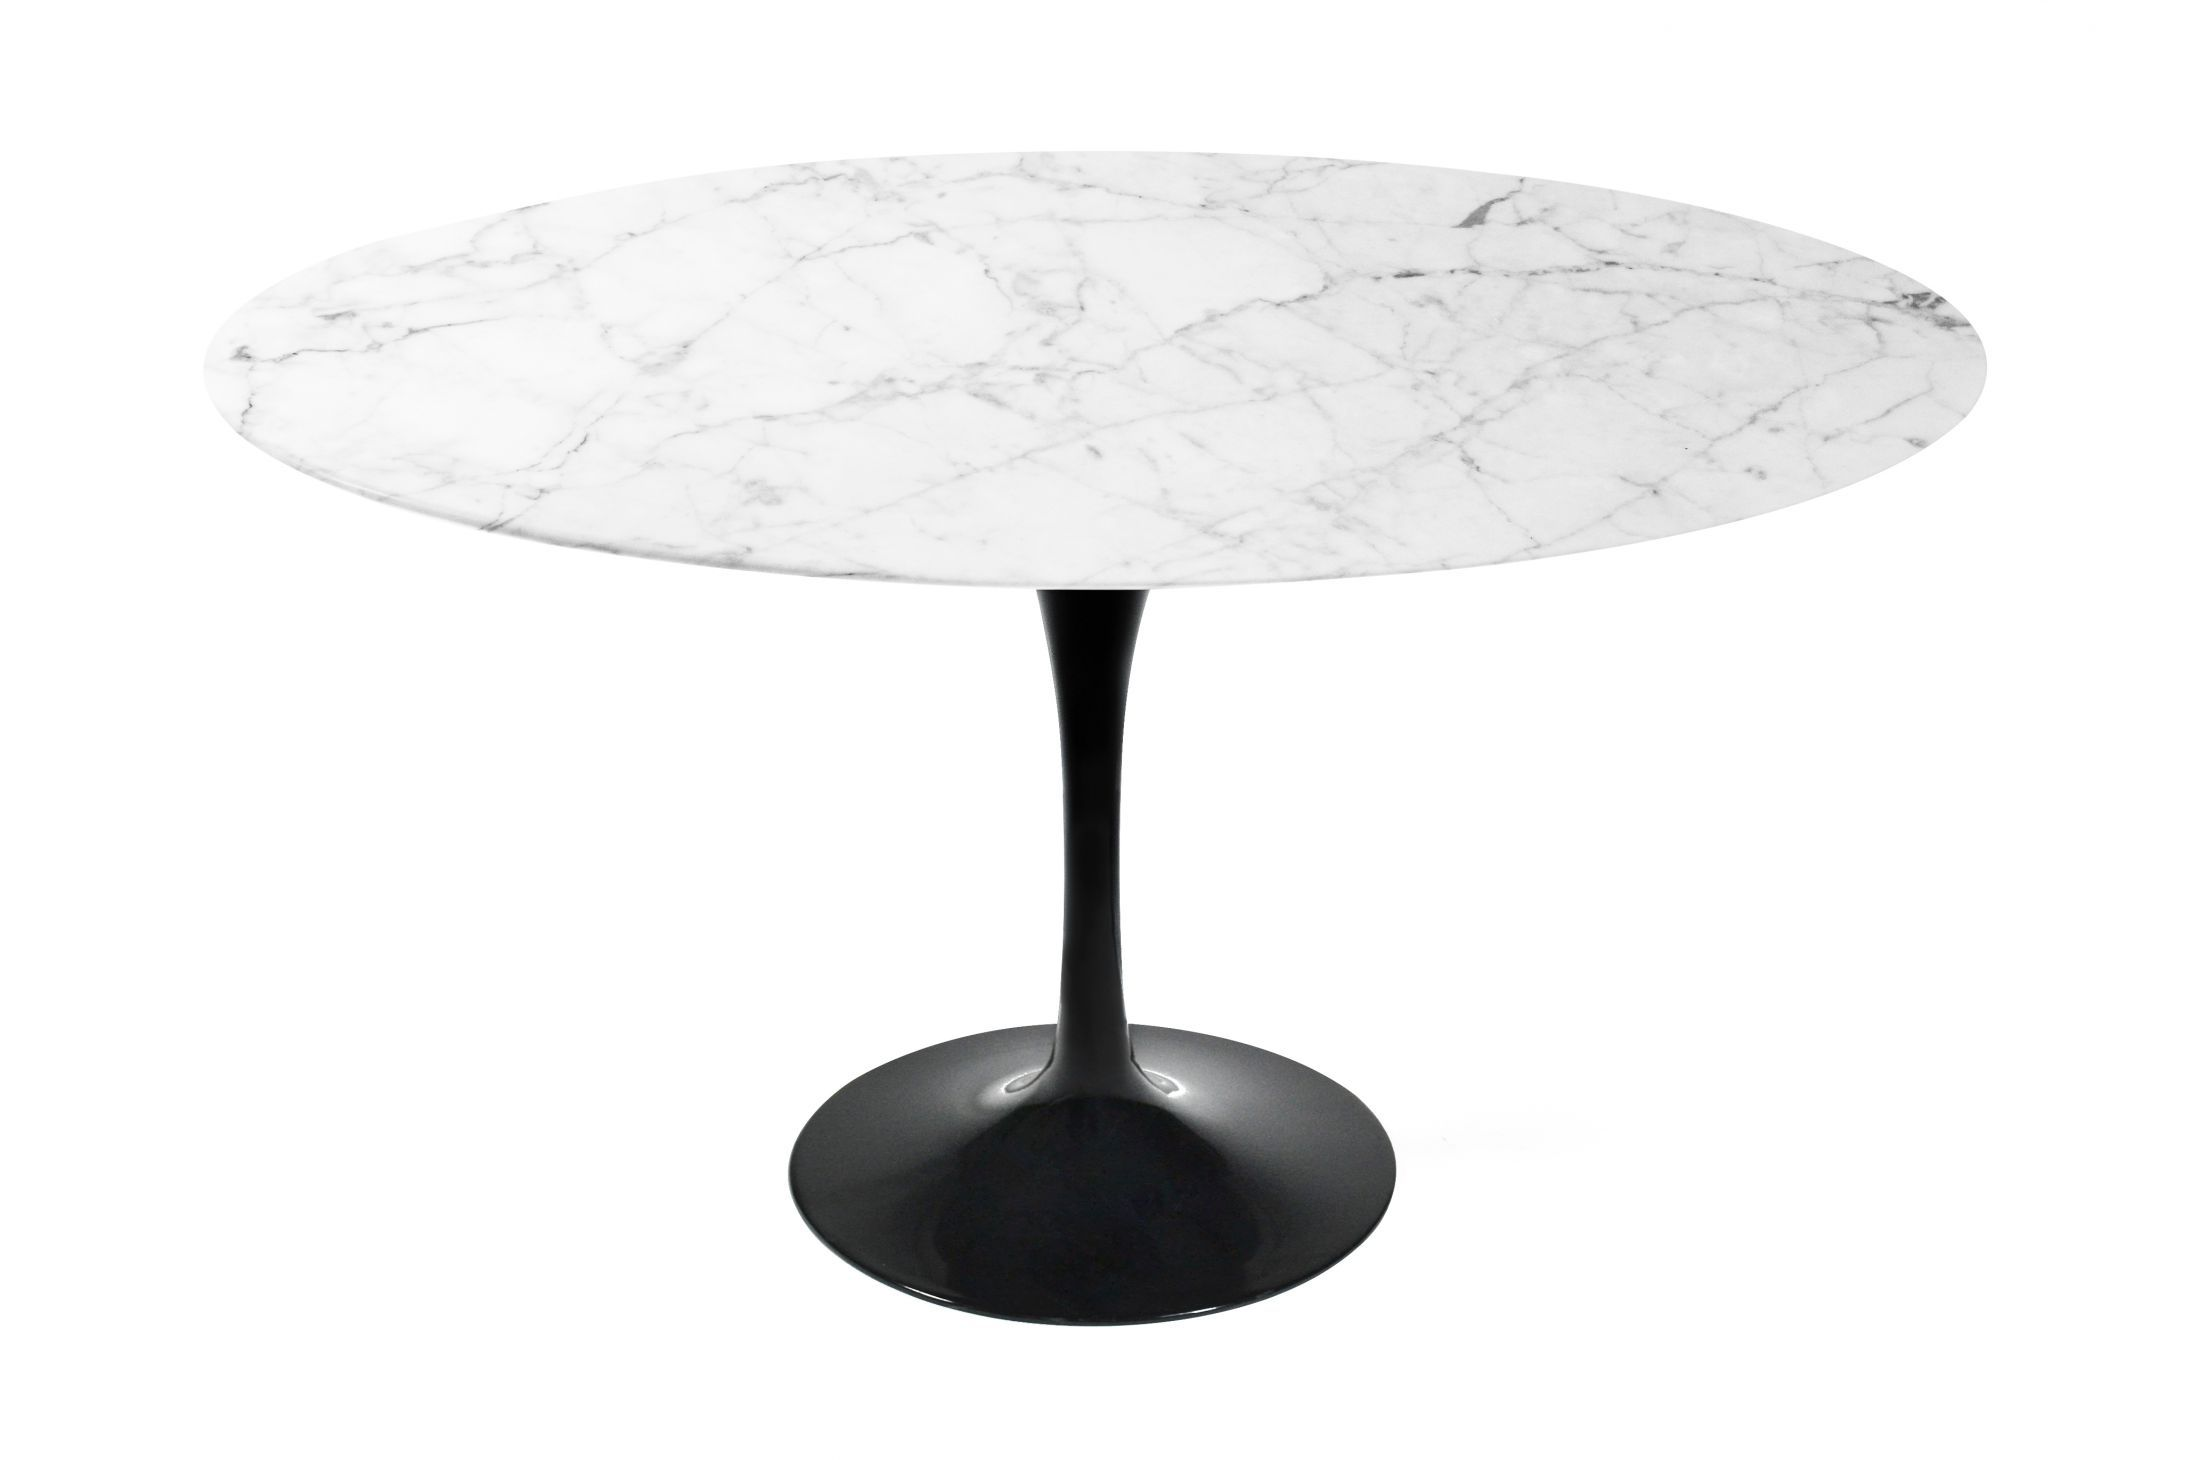 Elegant I KNOWWW, Tulip Tables Are So Overdone, But Thereu0027s Just Something Very  Much My